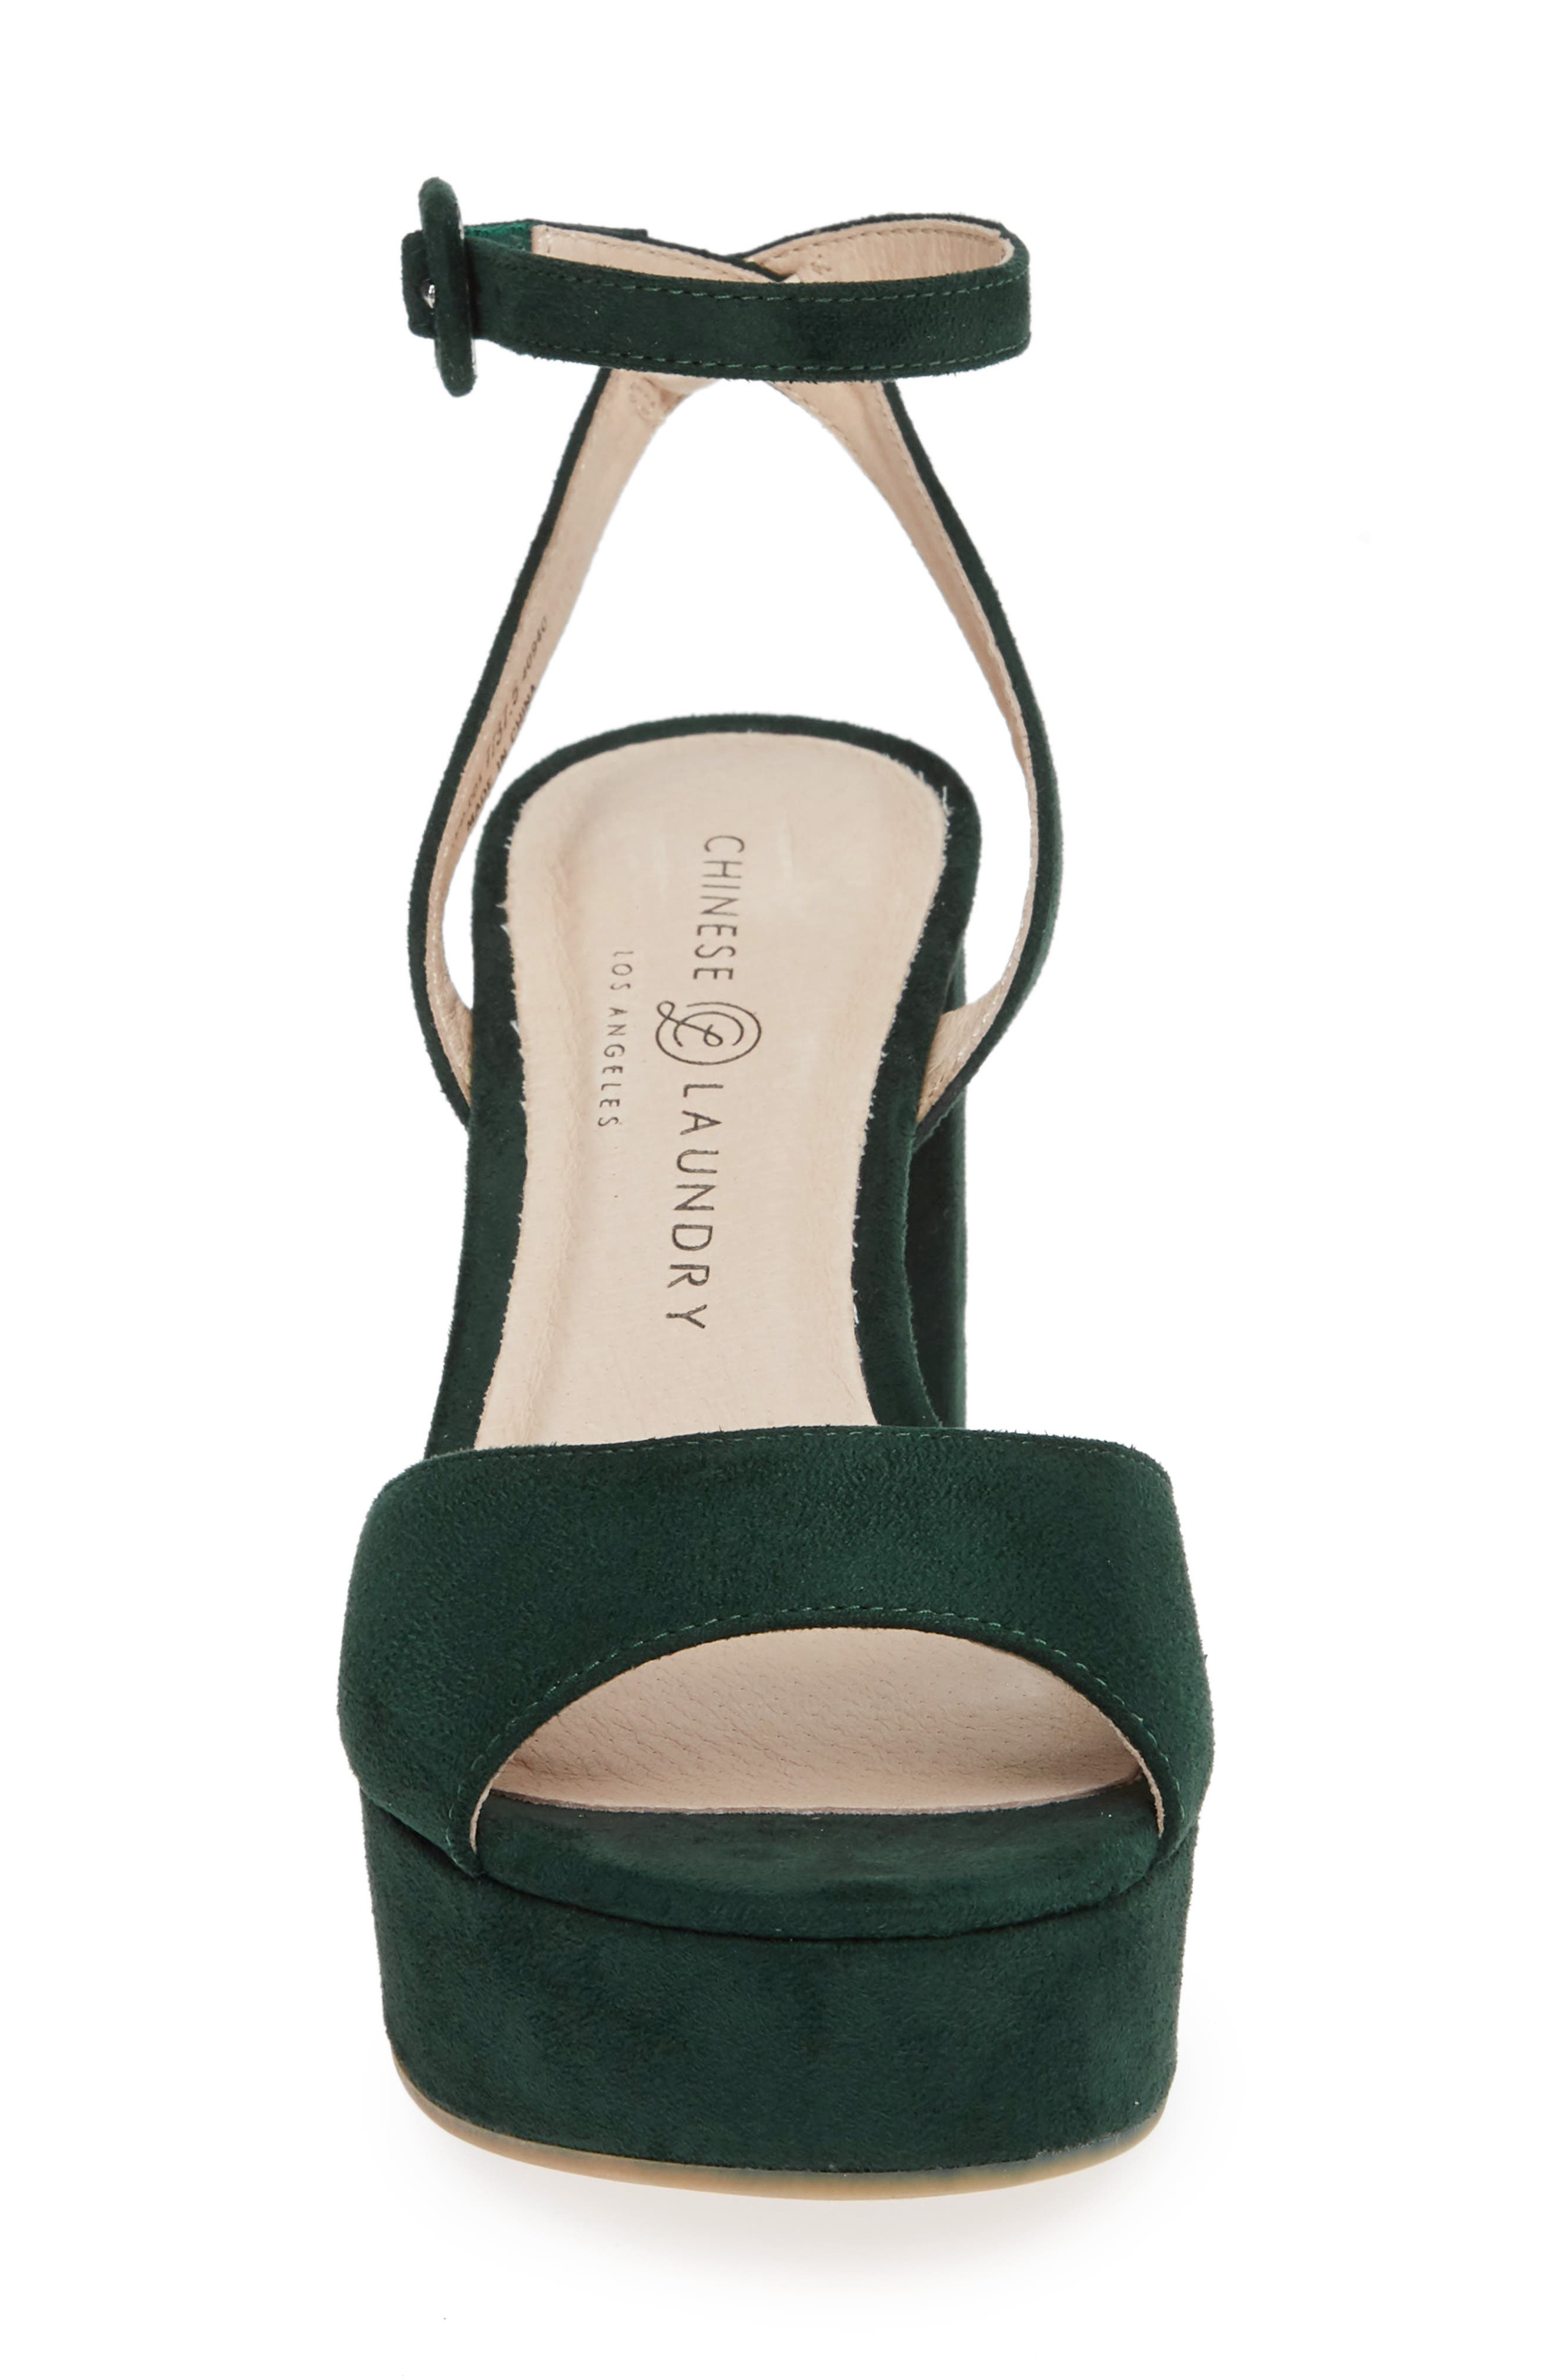 CHINESE LAUNDRY, Theresa Platform Sandal, Alternate thumbnail 4, color, FOREST GREEN SUEDE